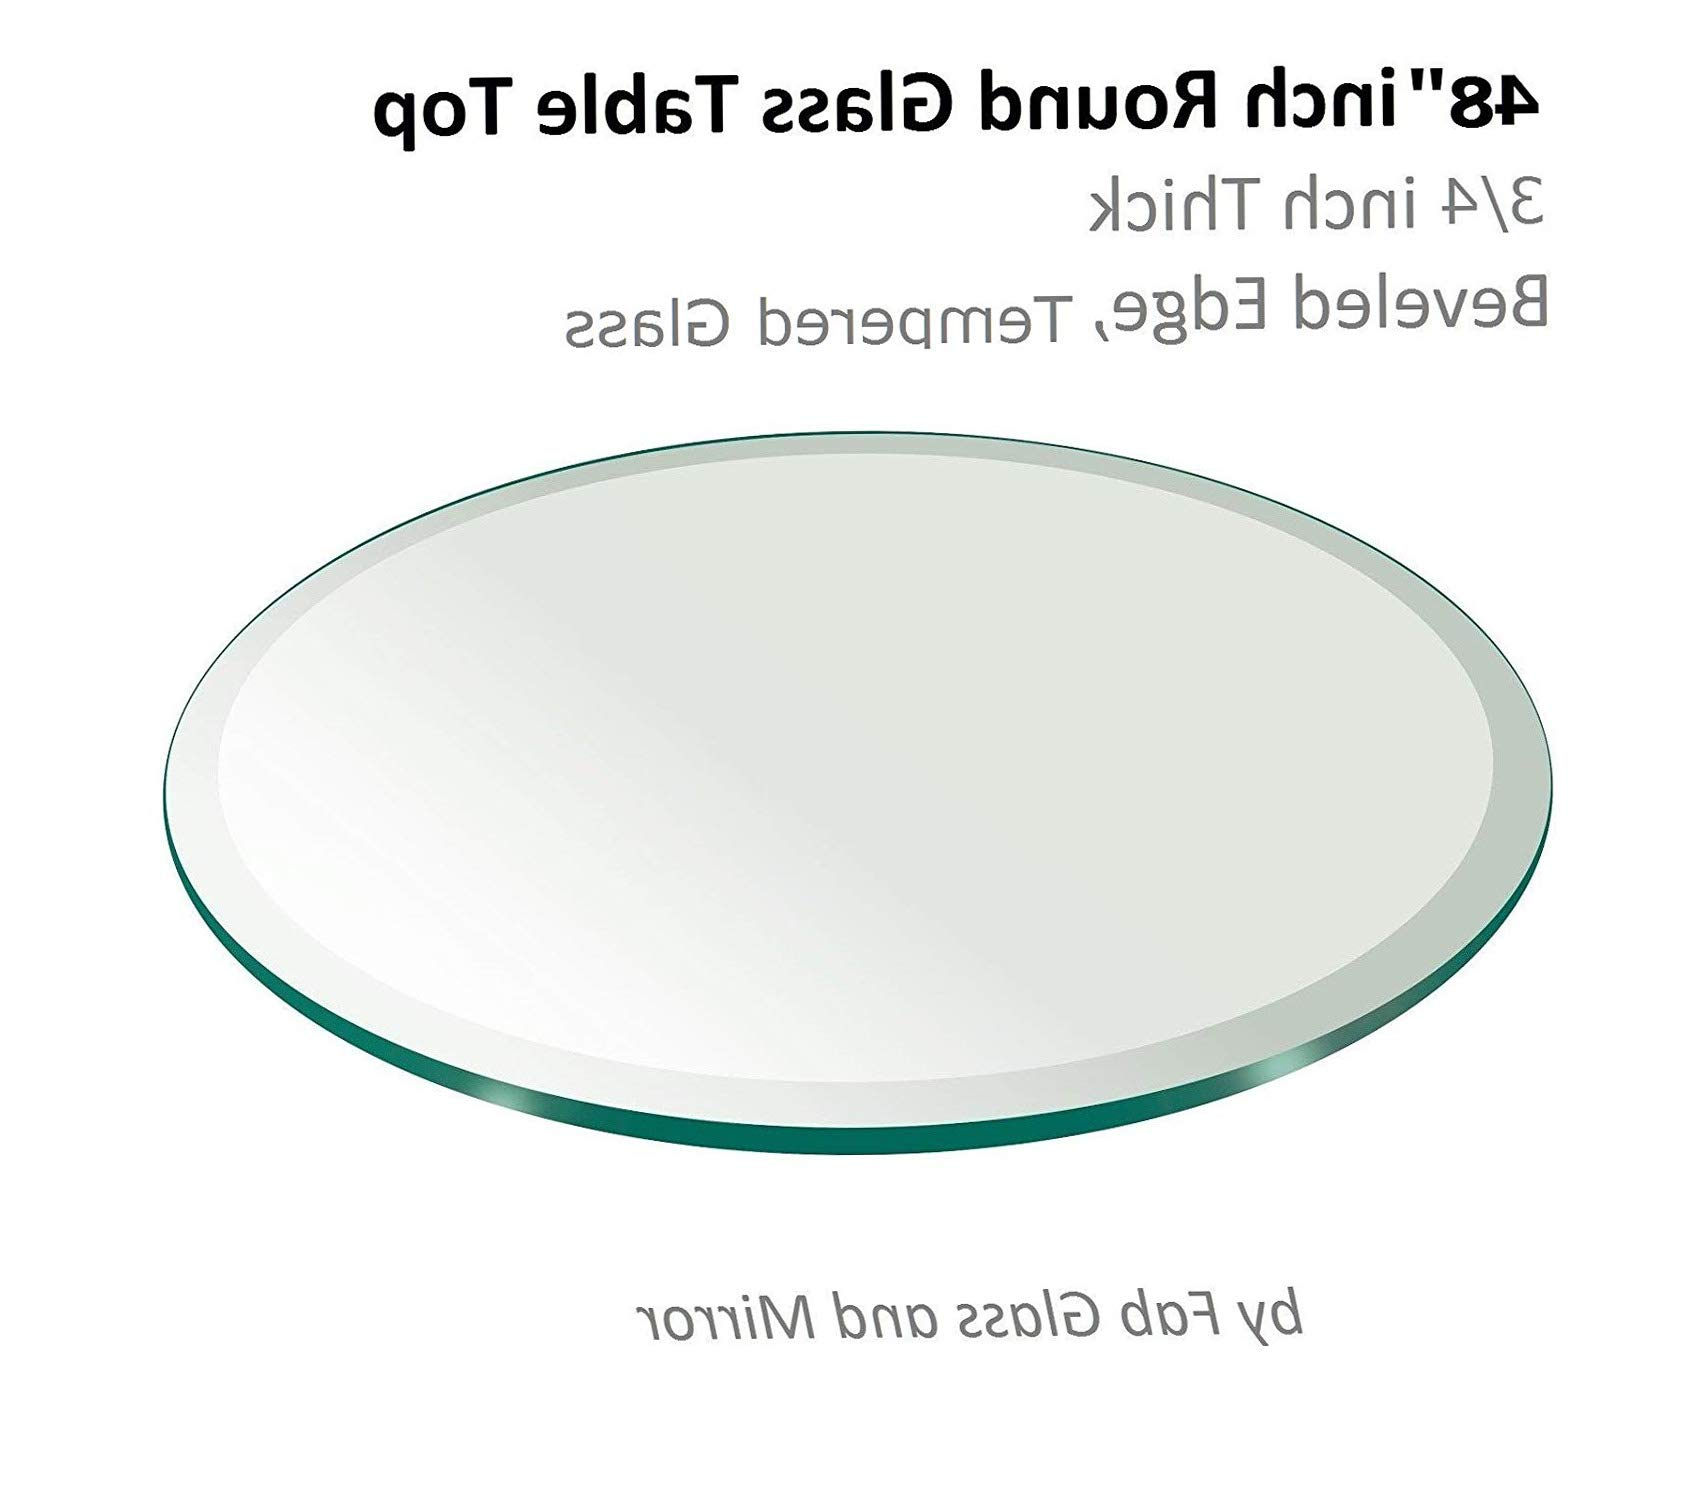 Fаb Glаss Аnd Mirrоr Patio Outdoor Garden Premium 48'' Inch Round Glass Table Top 3/4'' Thick Tempered Beveled Edge by